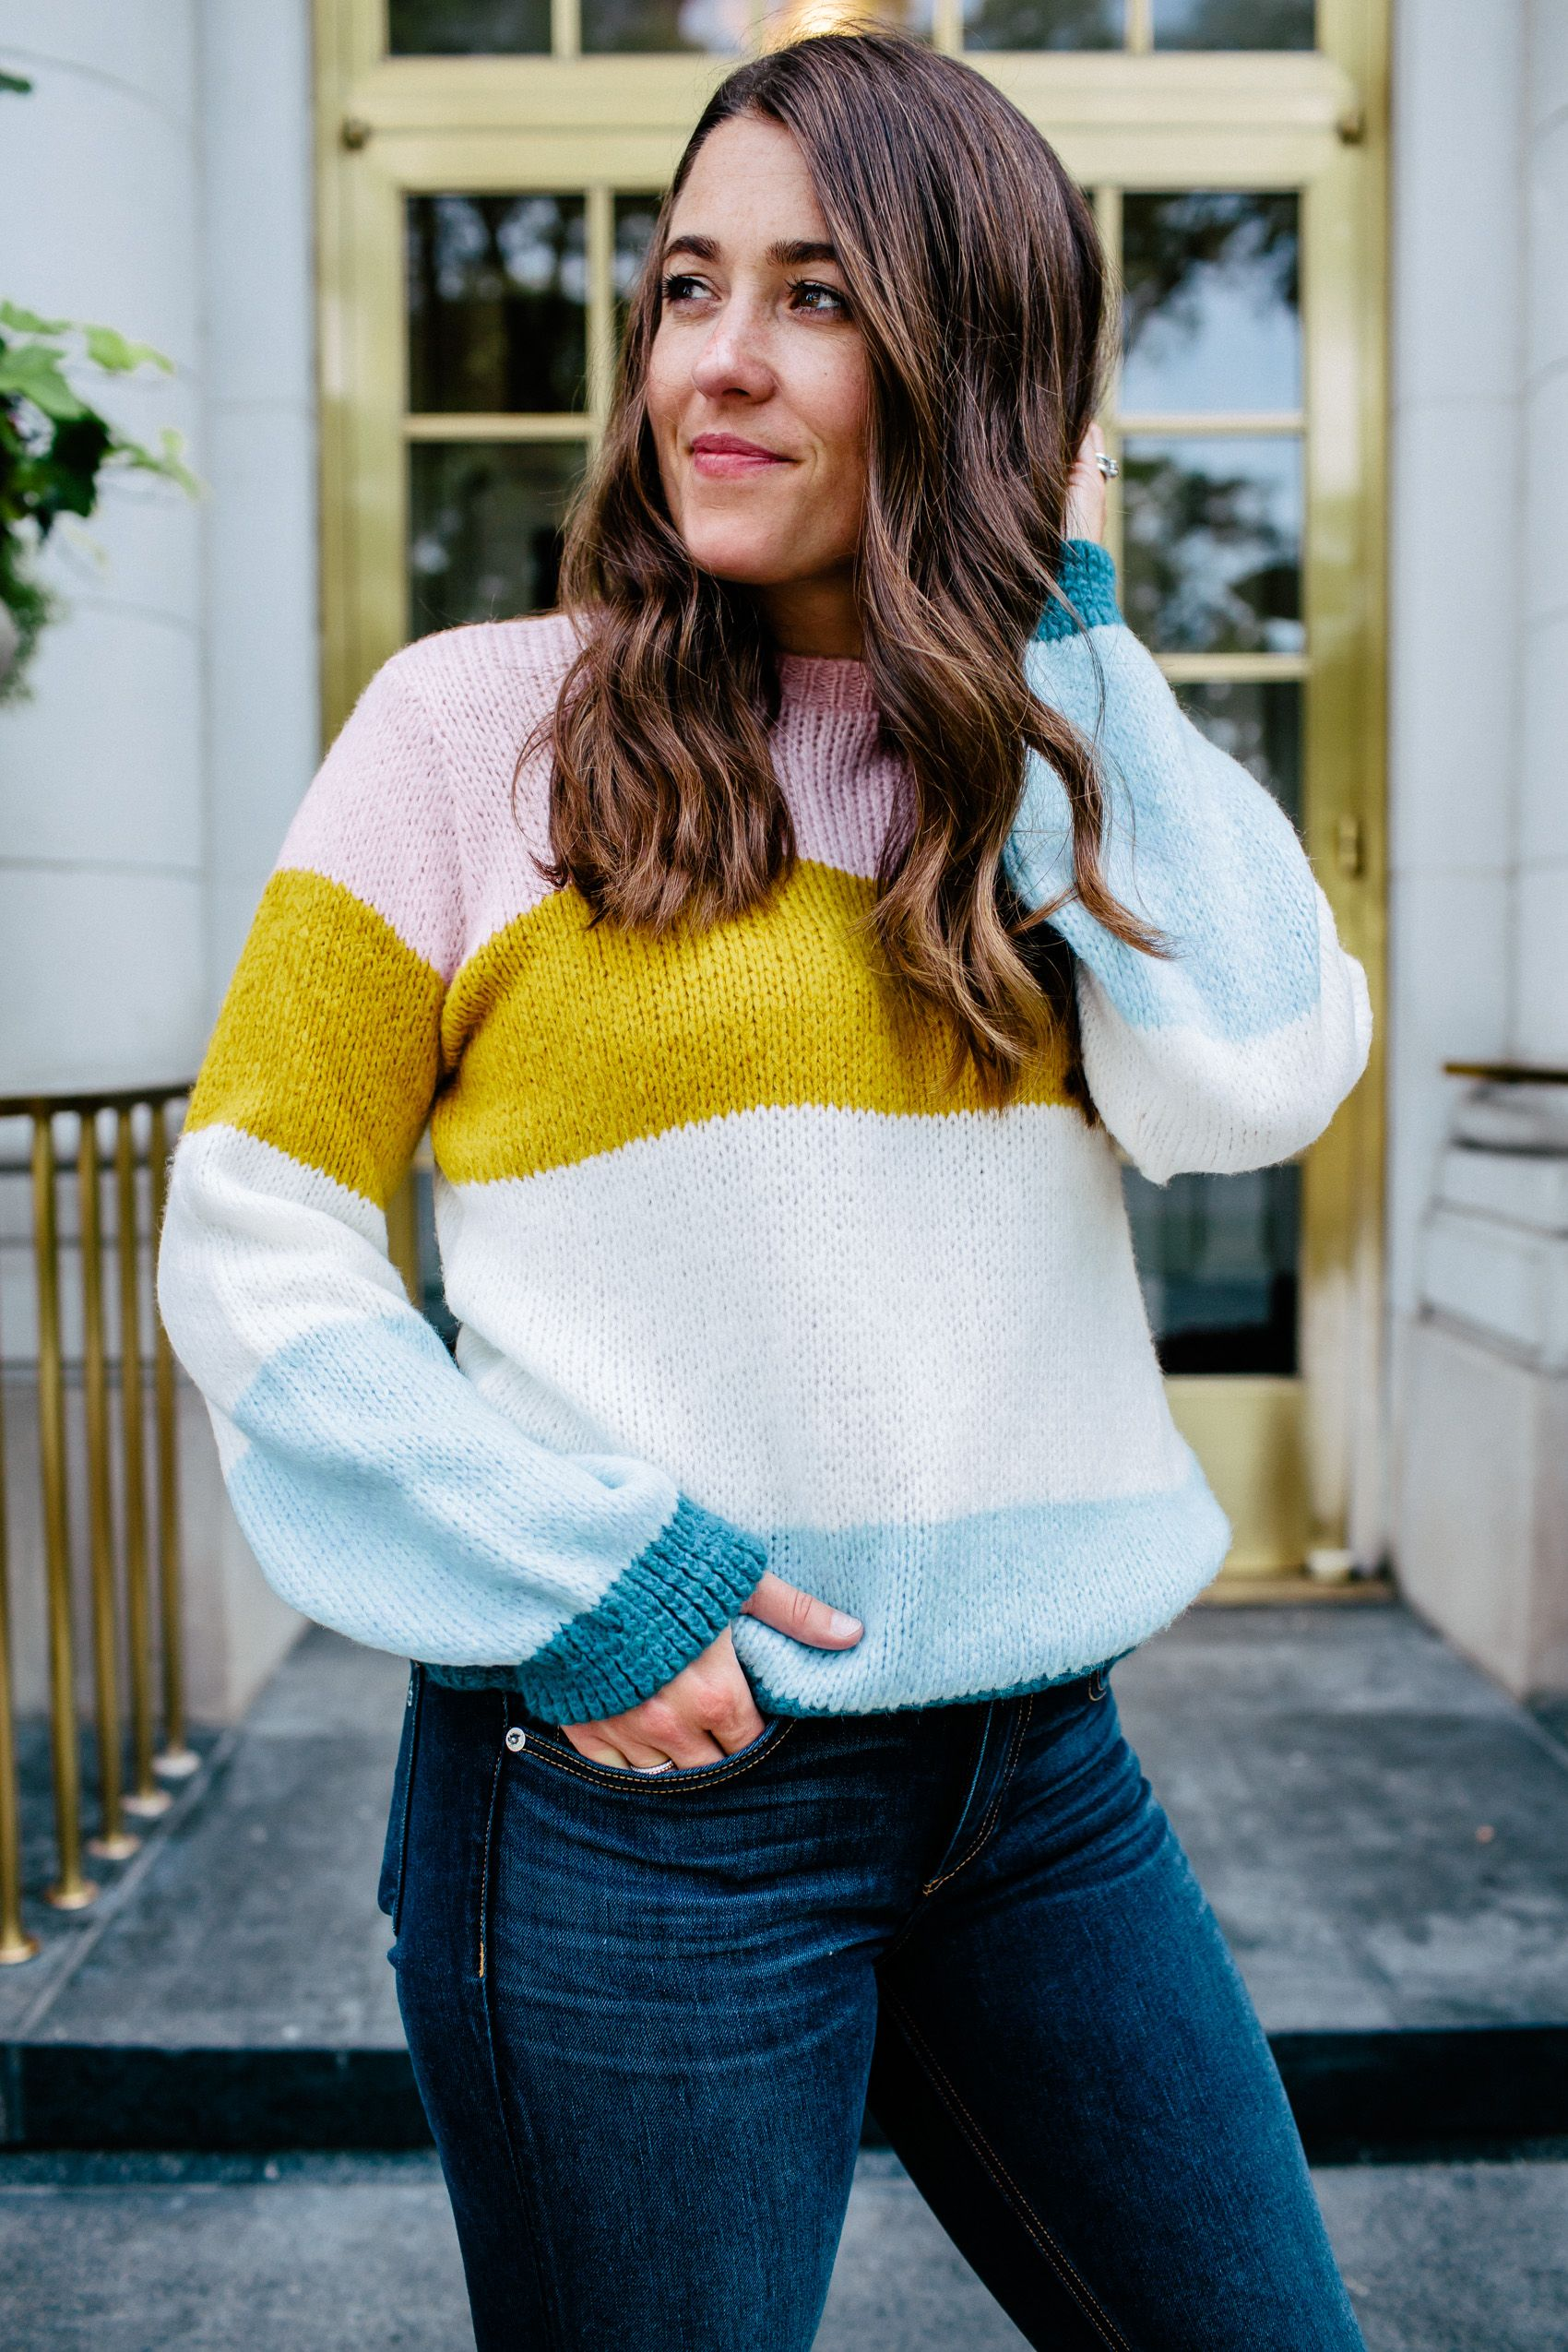 cb26319a04e 6 Outfits You Need from the Nordstrom Anniversary Sale